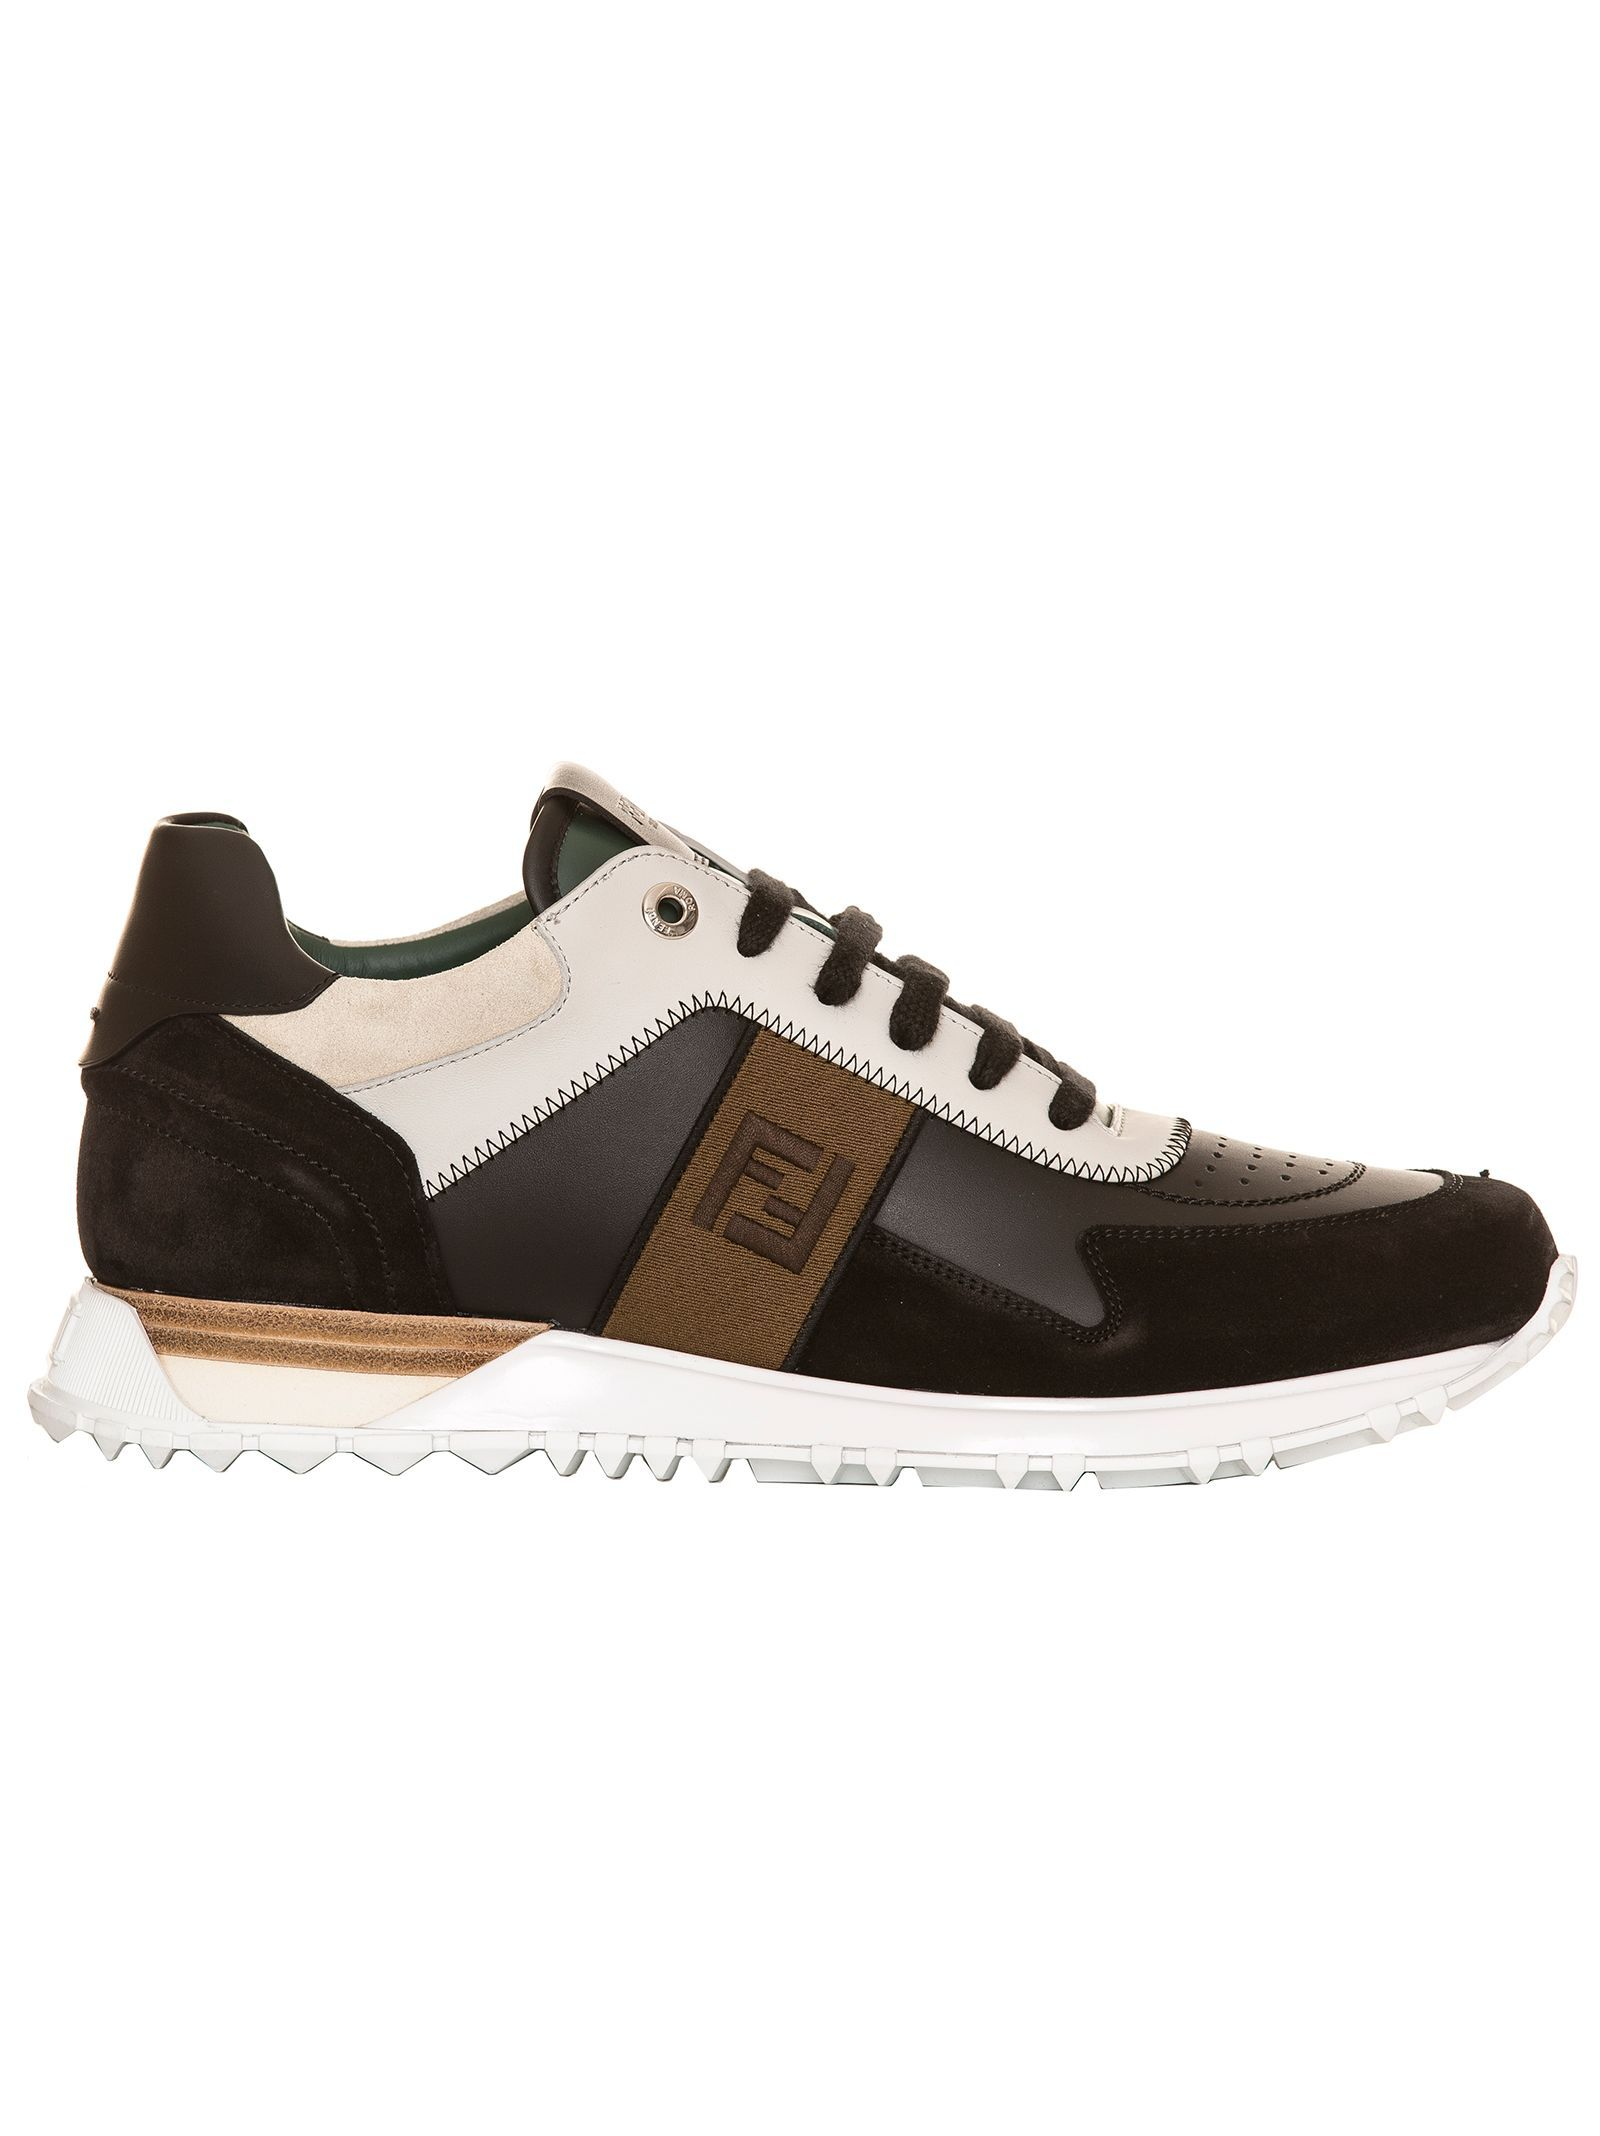 Fendi Leather And Suede Sneakers Black In Multicolour Modesens Sneakers Penny Loafers Fendi